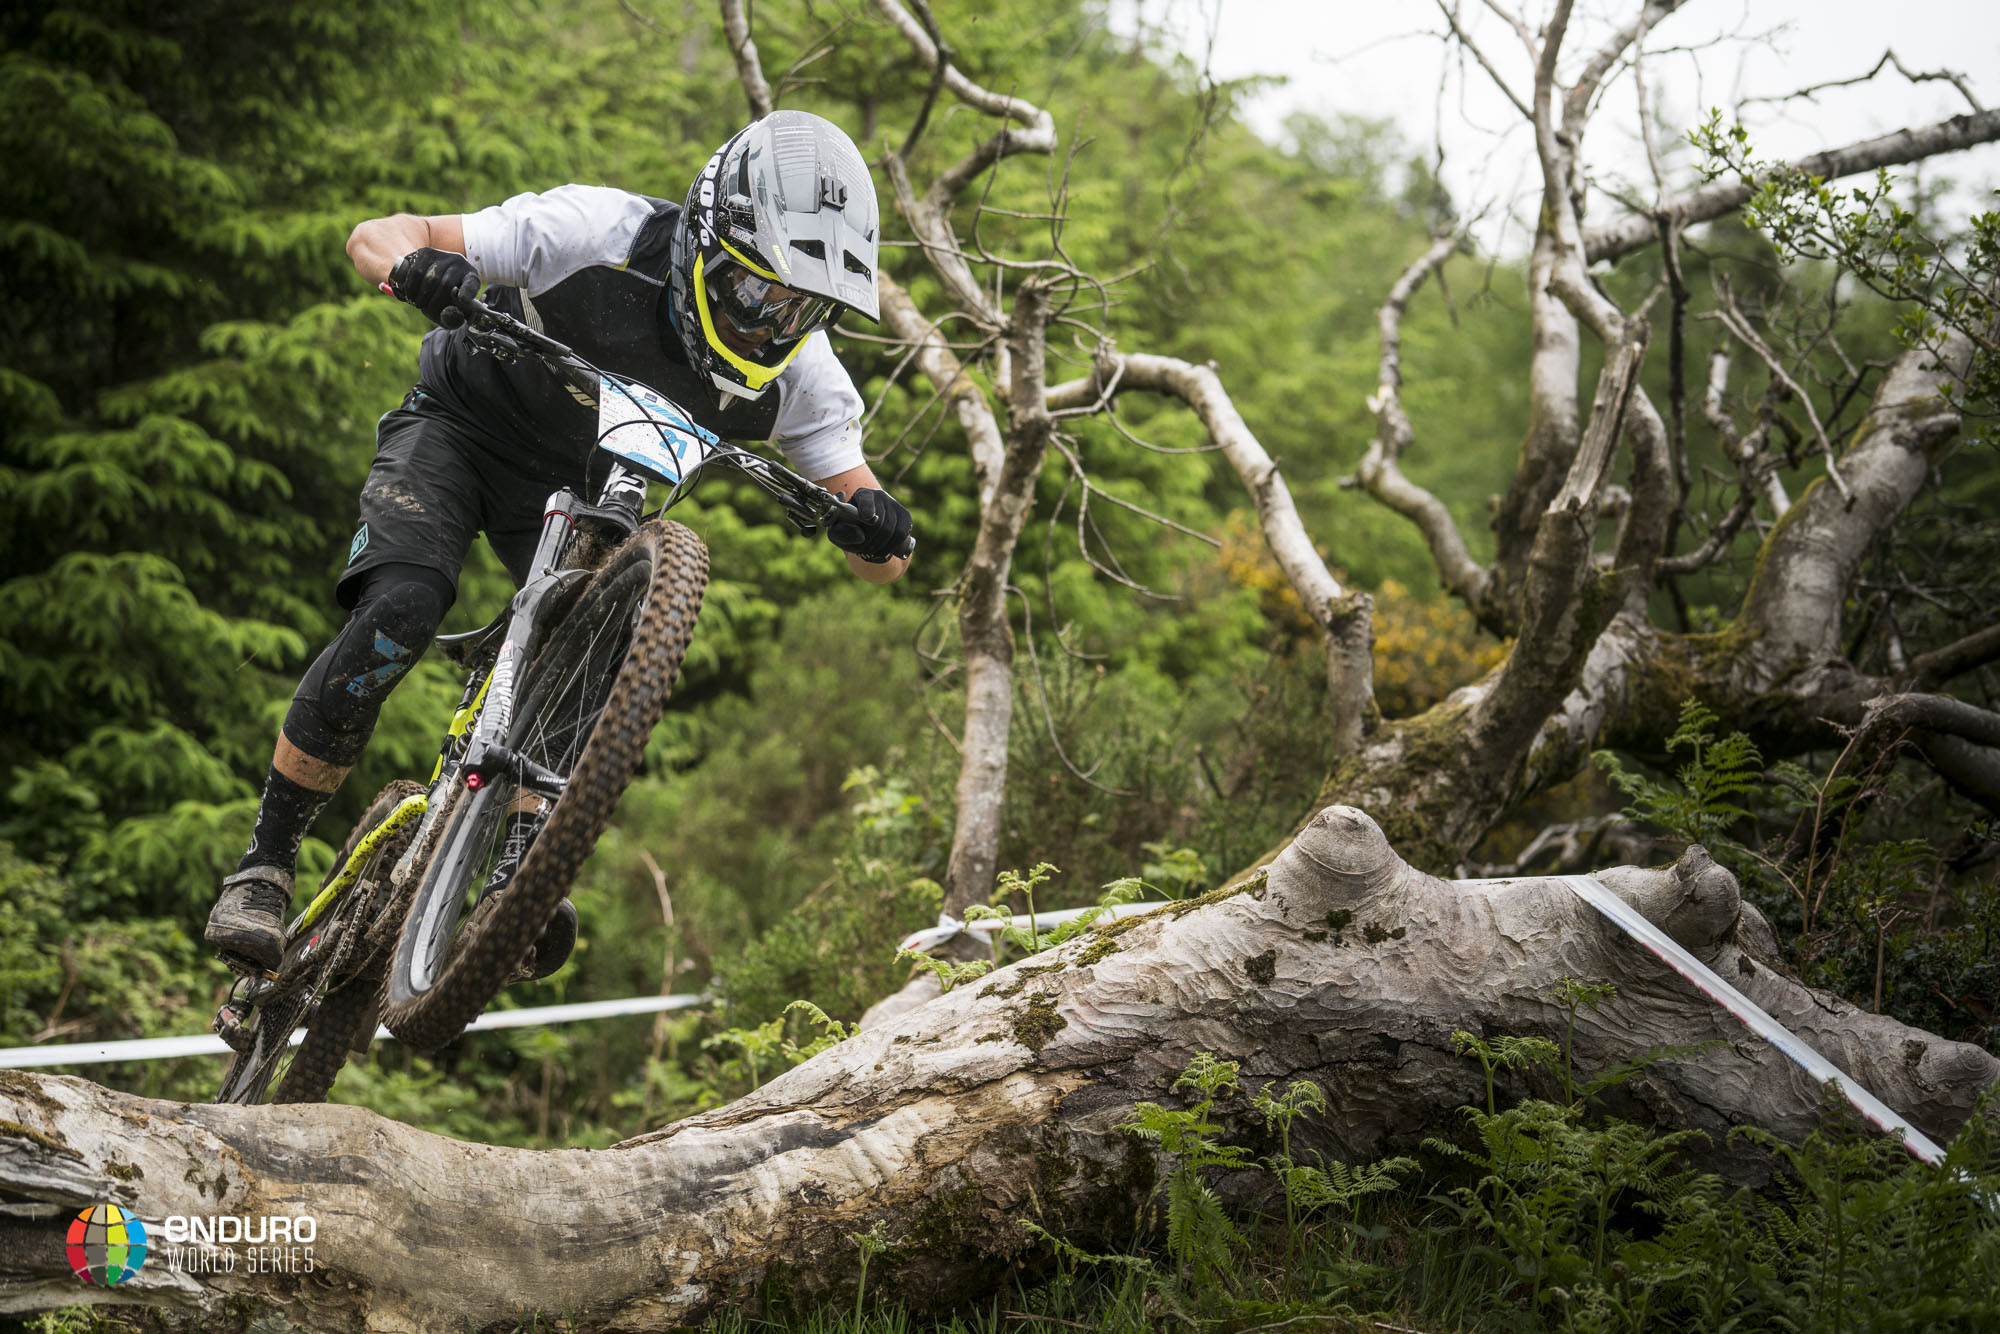 The young frenchman is showing such racing experience, Adrien Dailly picked up his second round win here in Ireland